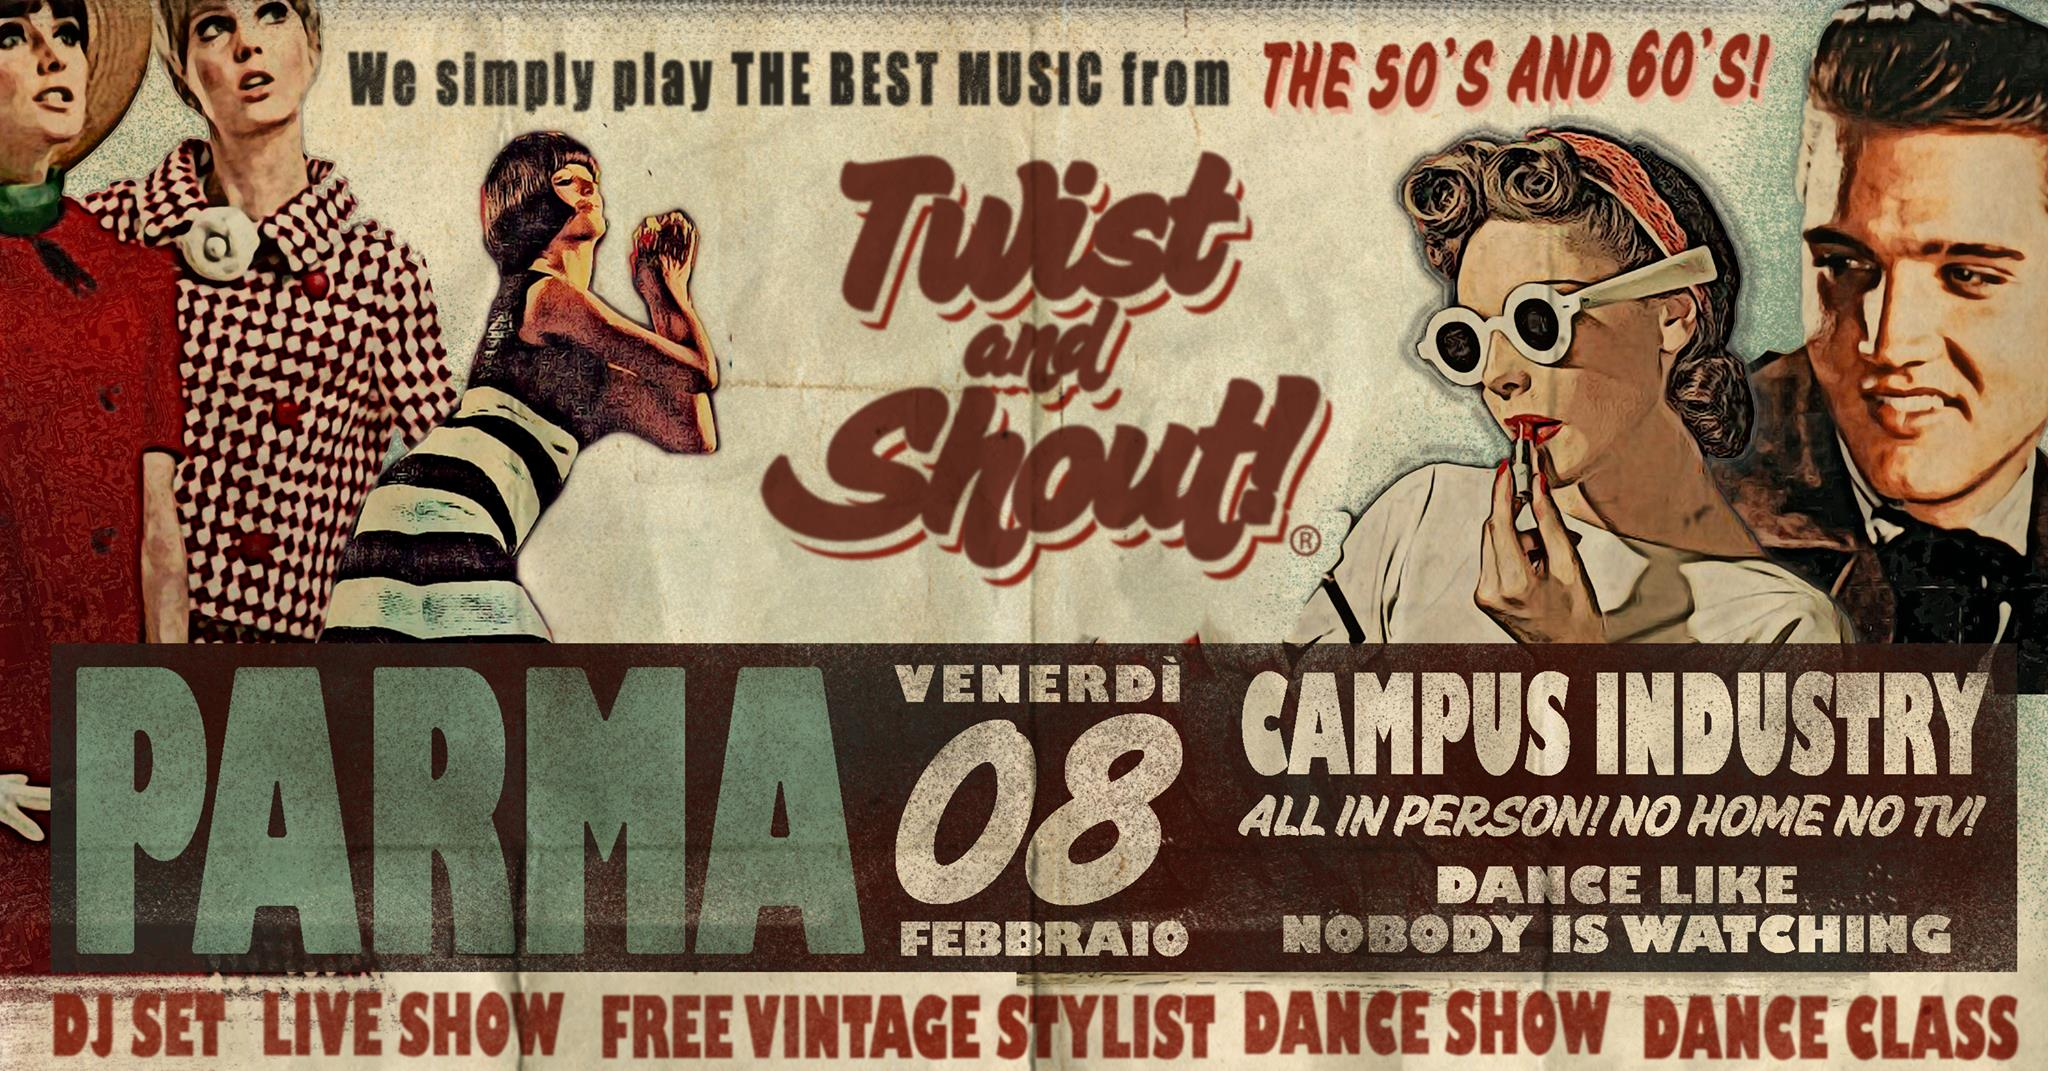 Twist and Shout! A 50's and 60's Night Parma febbraio 2019